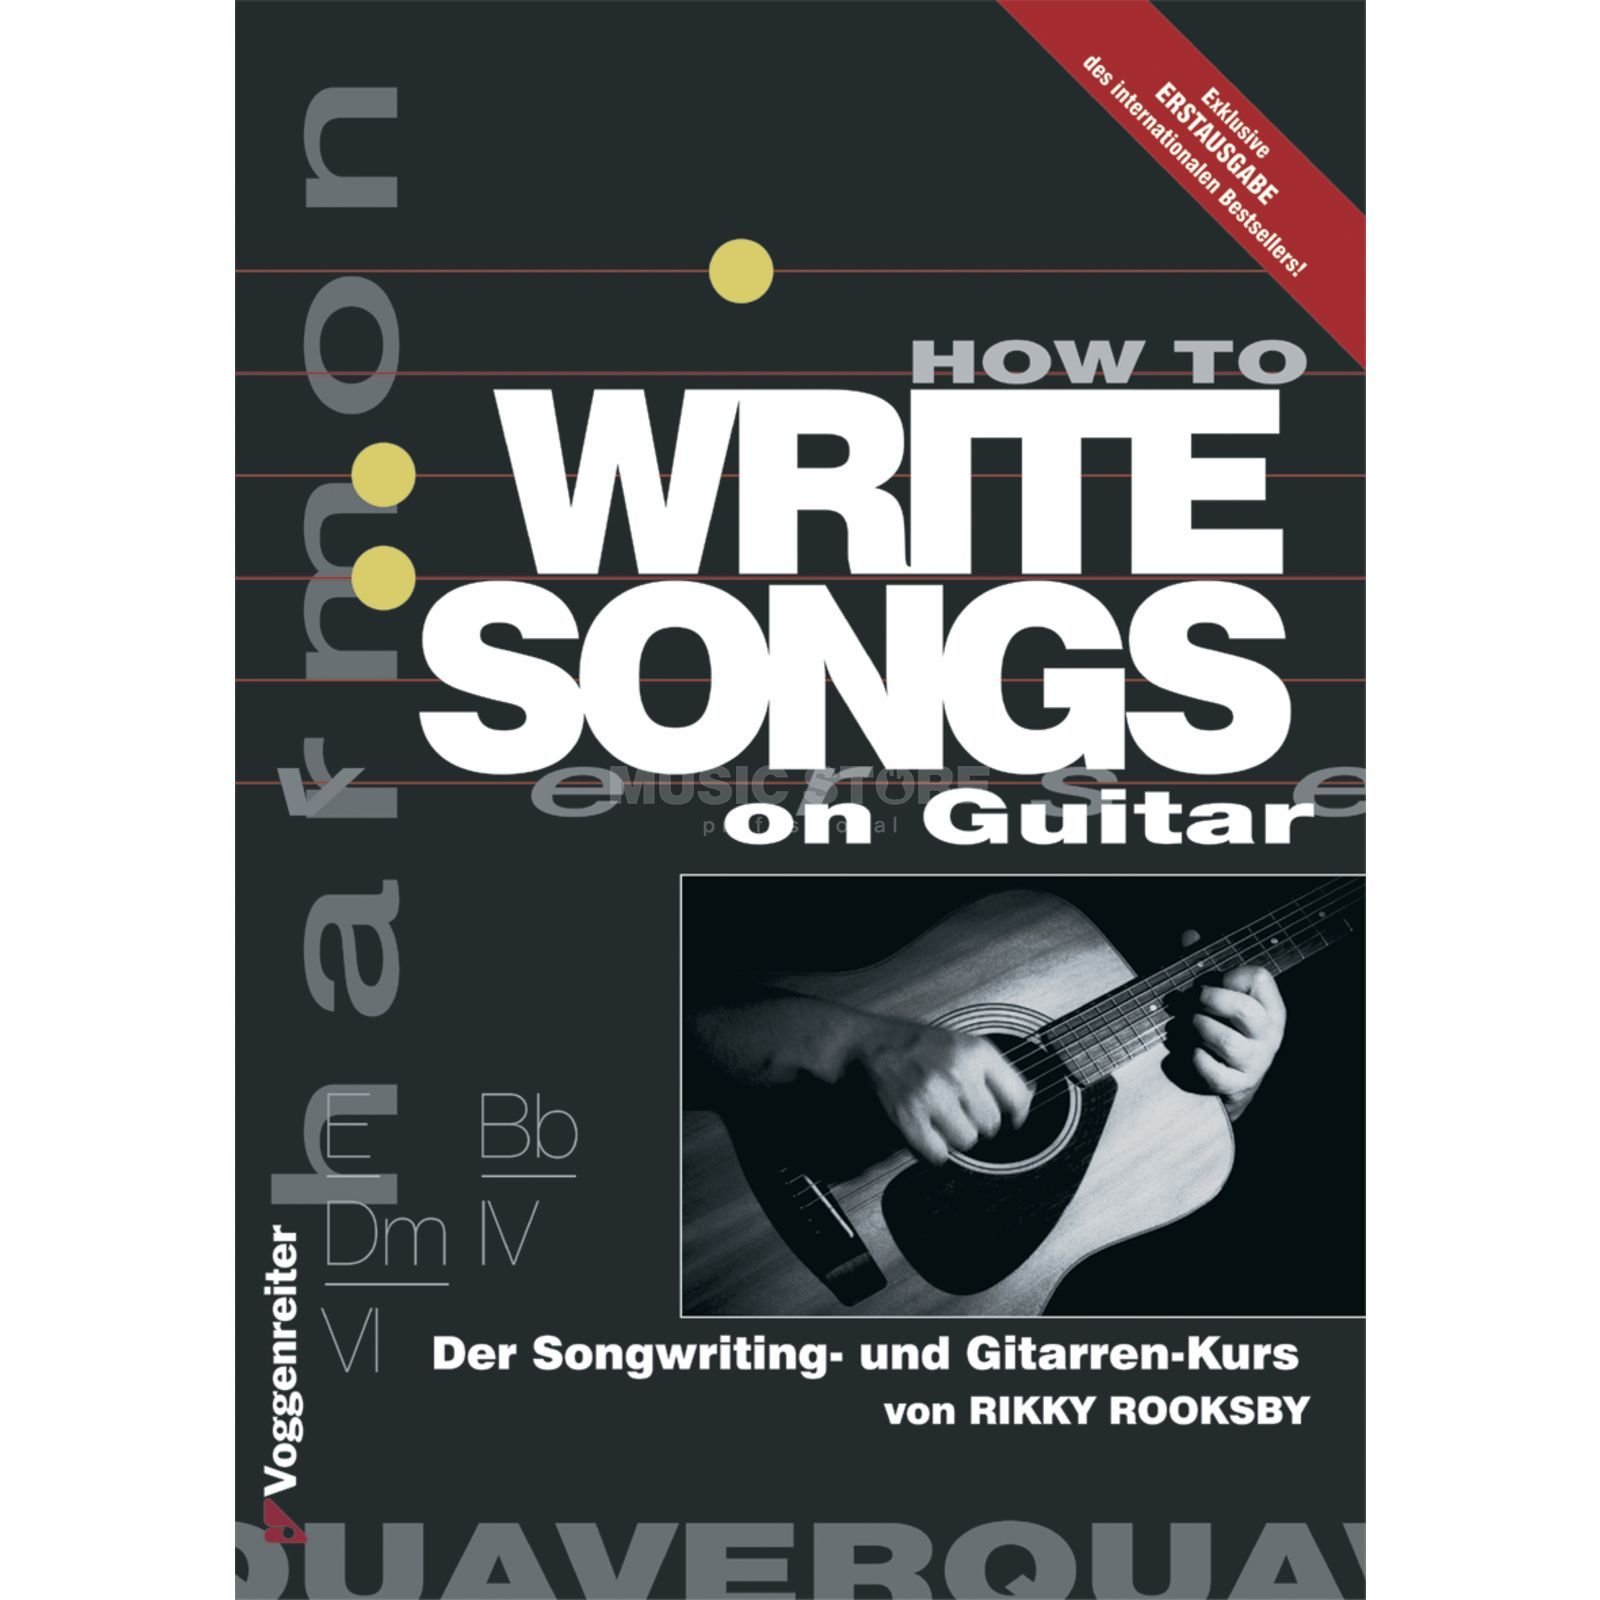 Voggenreiter How to write songs on guitar  Rikky Rooksby Produktbild